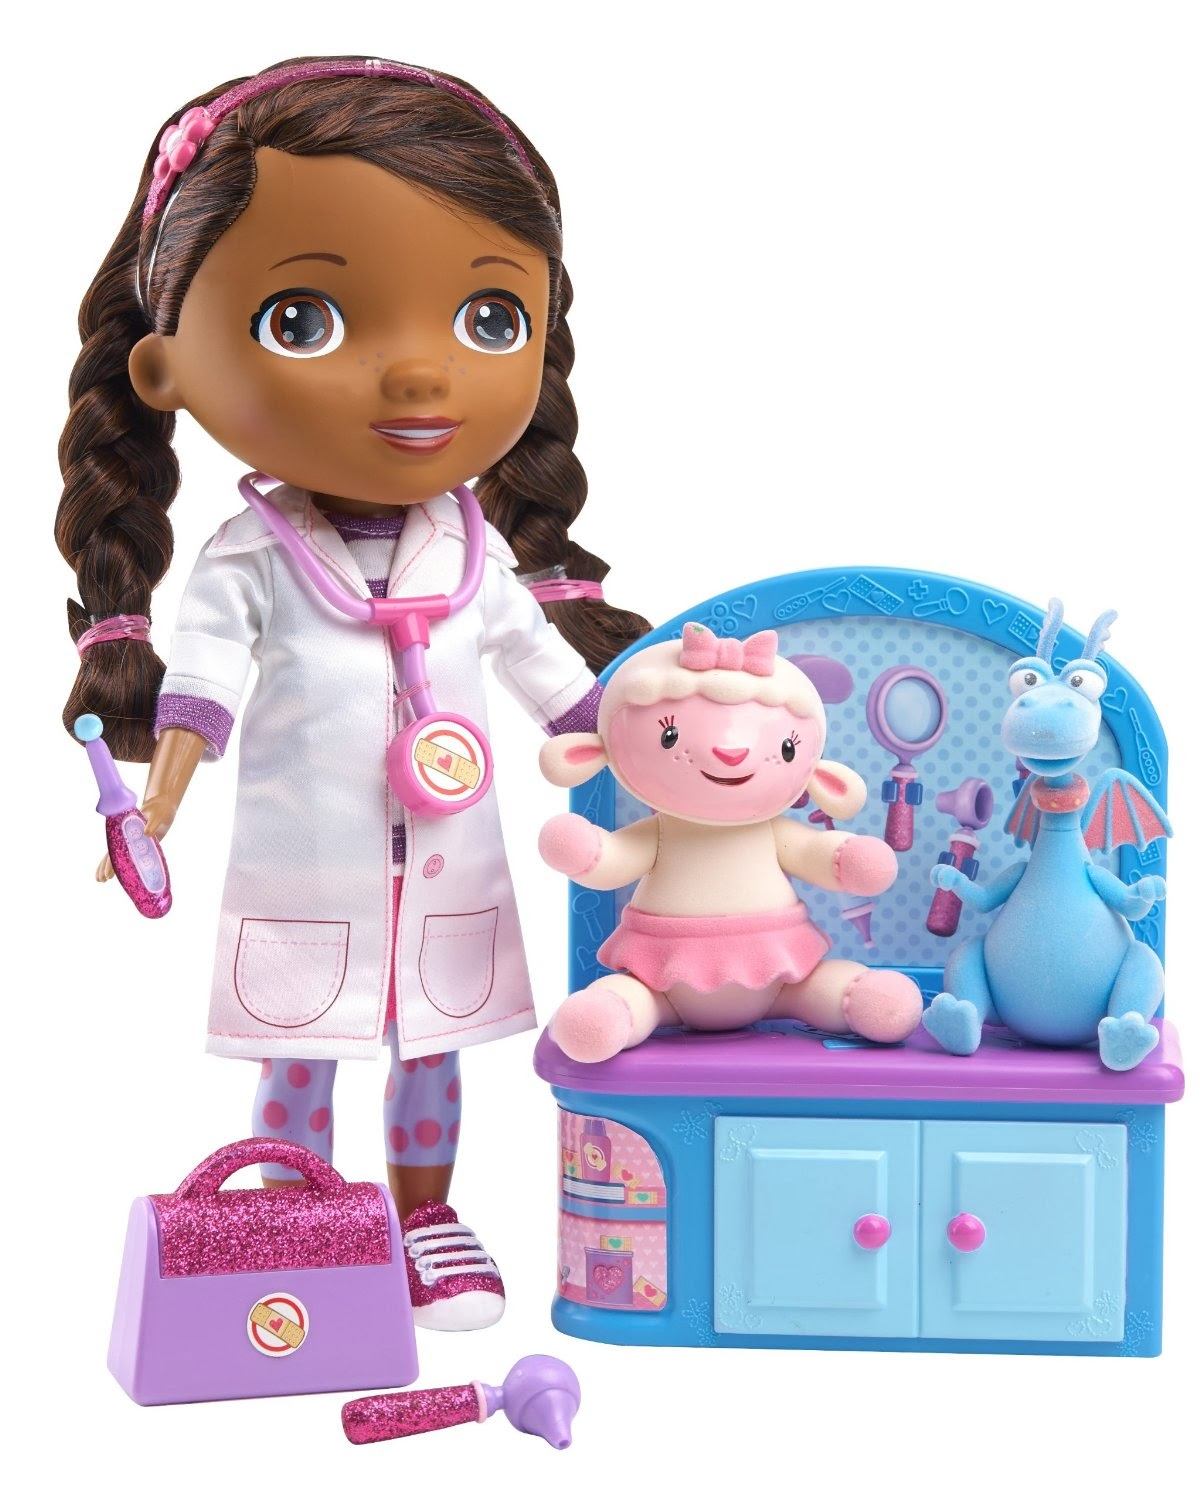 Girl Toys Doll : Just play toys the doc mcstuffins magic talkin